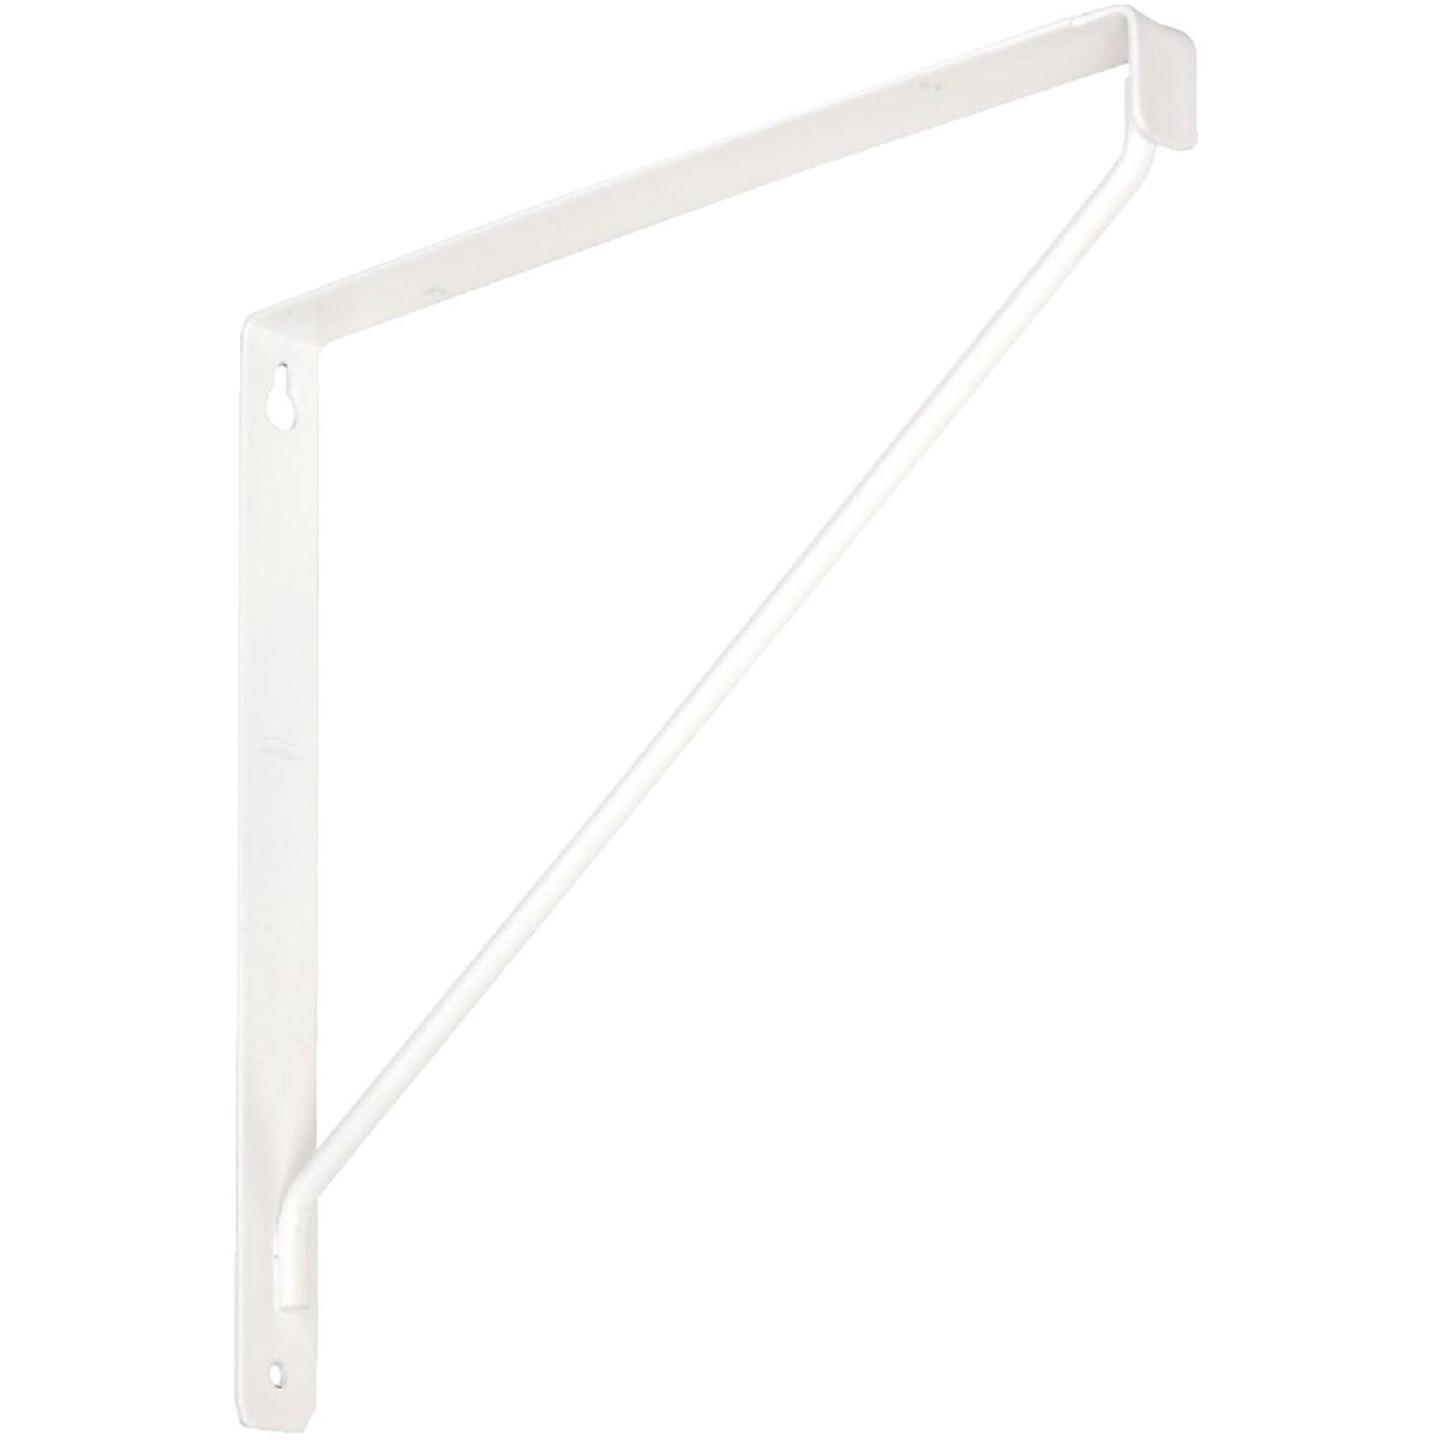 National 207 10-3/8 In. D. x 7-1/32 In. H. White Steel Shelf Bracket Image 1